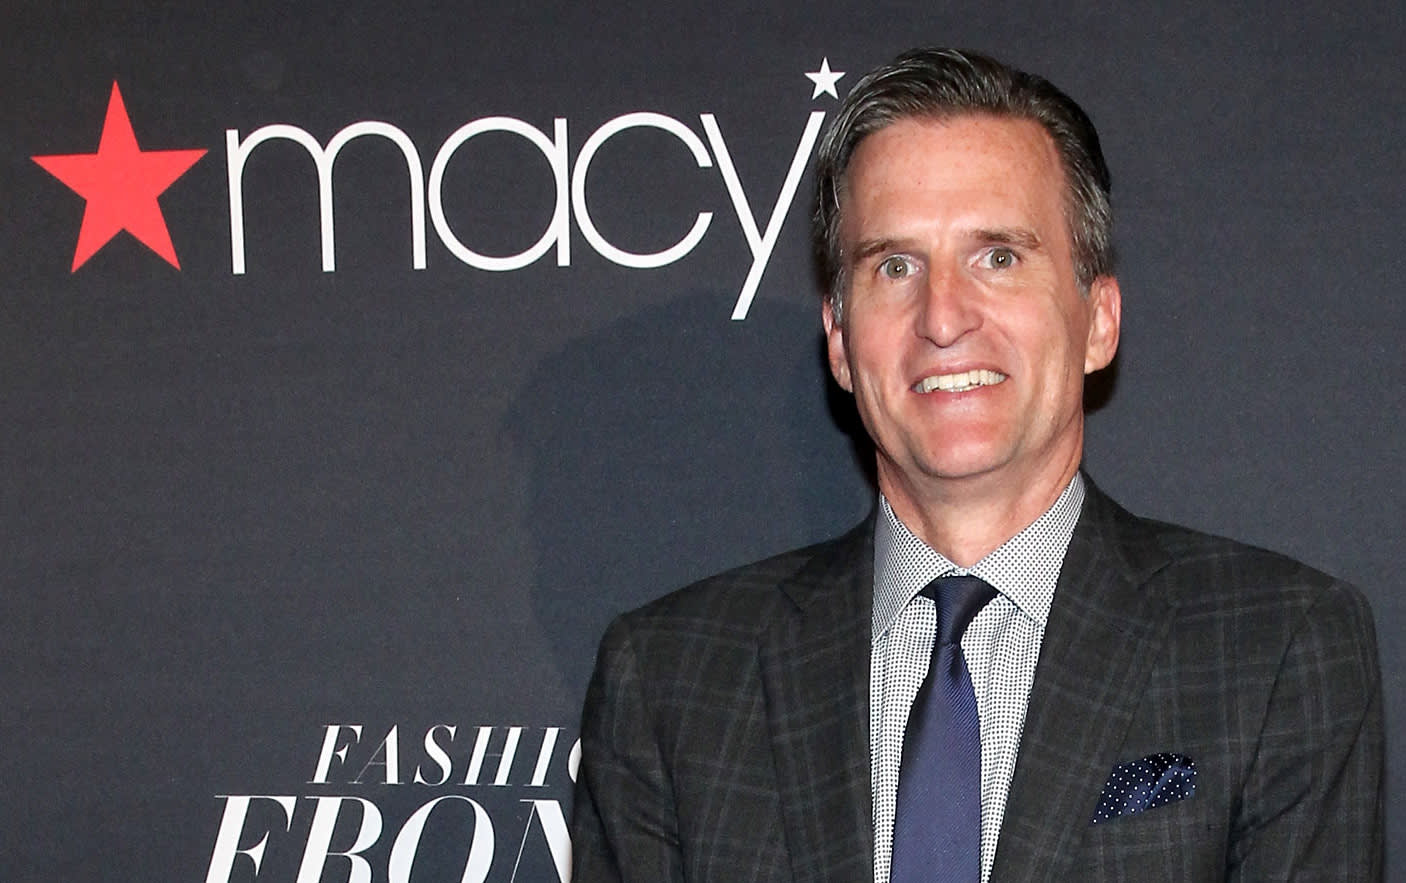 Macy's CEO Jeff Gennette: Shoppers have 'no appetite' for price increases from looming tariffs